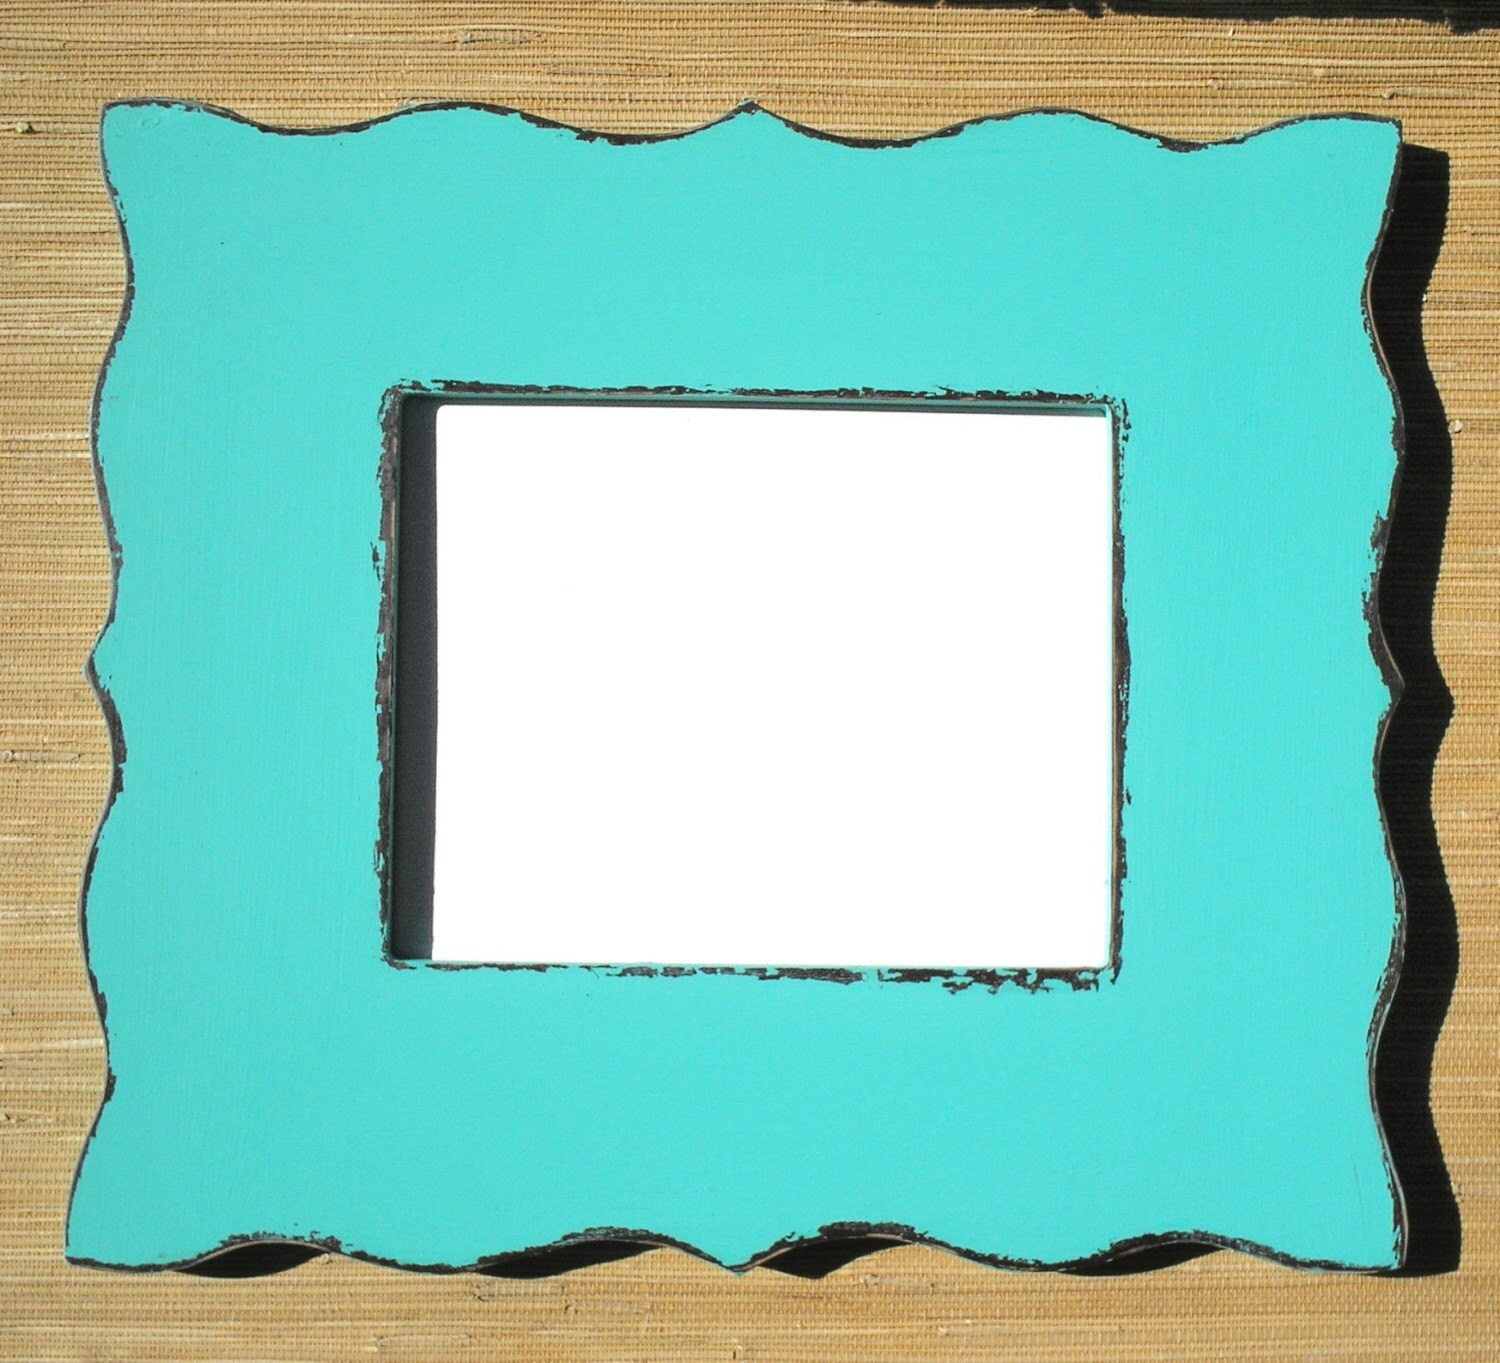 Whimsical Chipped Shabby Wide Picture Frame 8x8 OR 8x10 OR 8.5x11 with scrolled edge (Choose Color) Available in ANY size